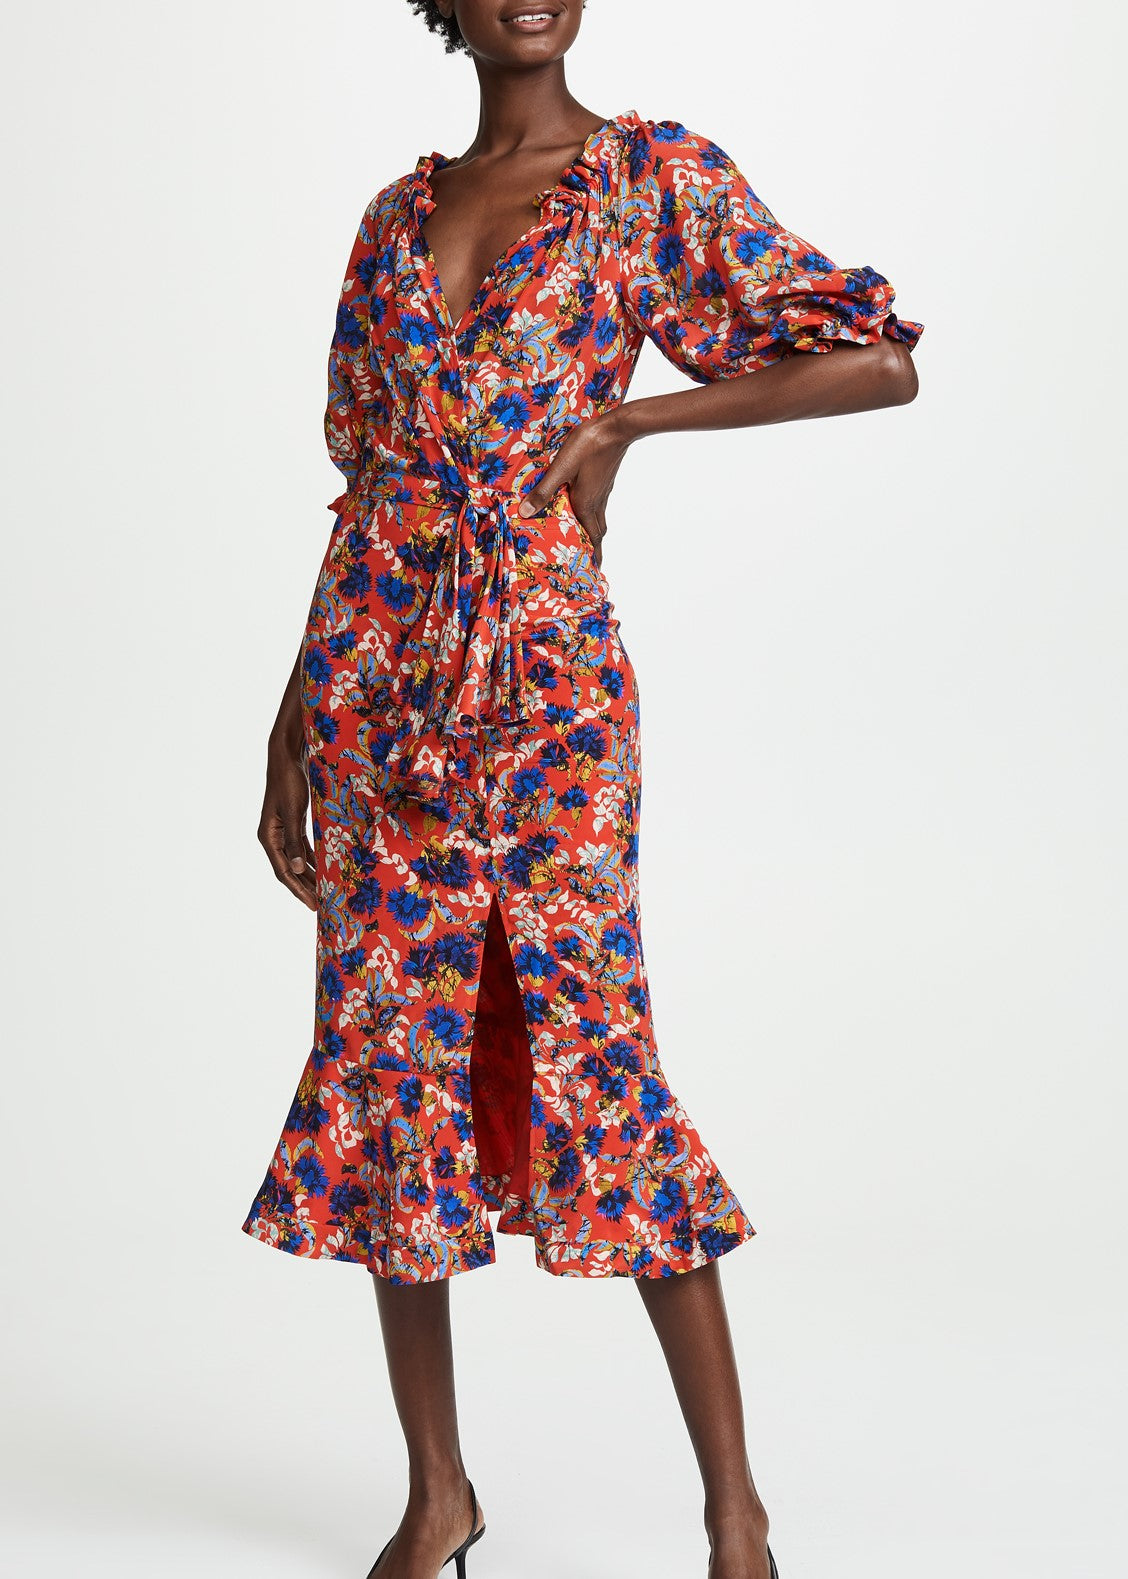 Saloni Olivia dress in flame azalea